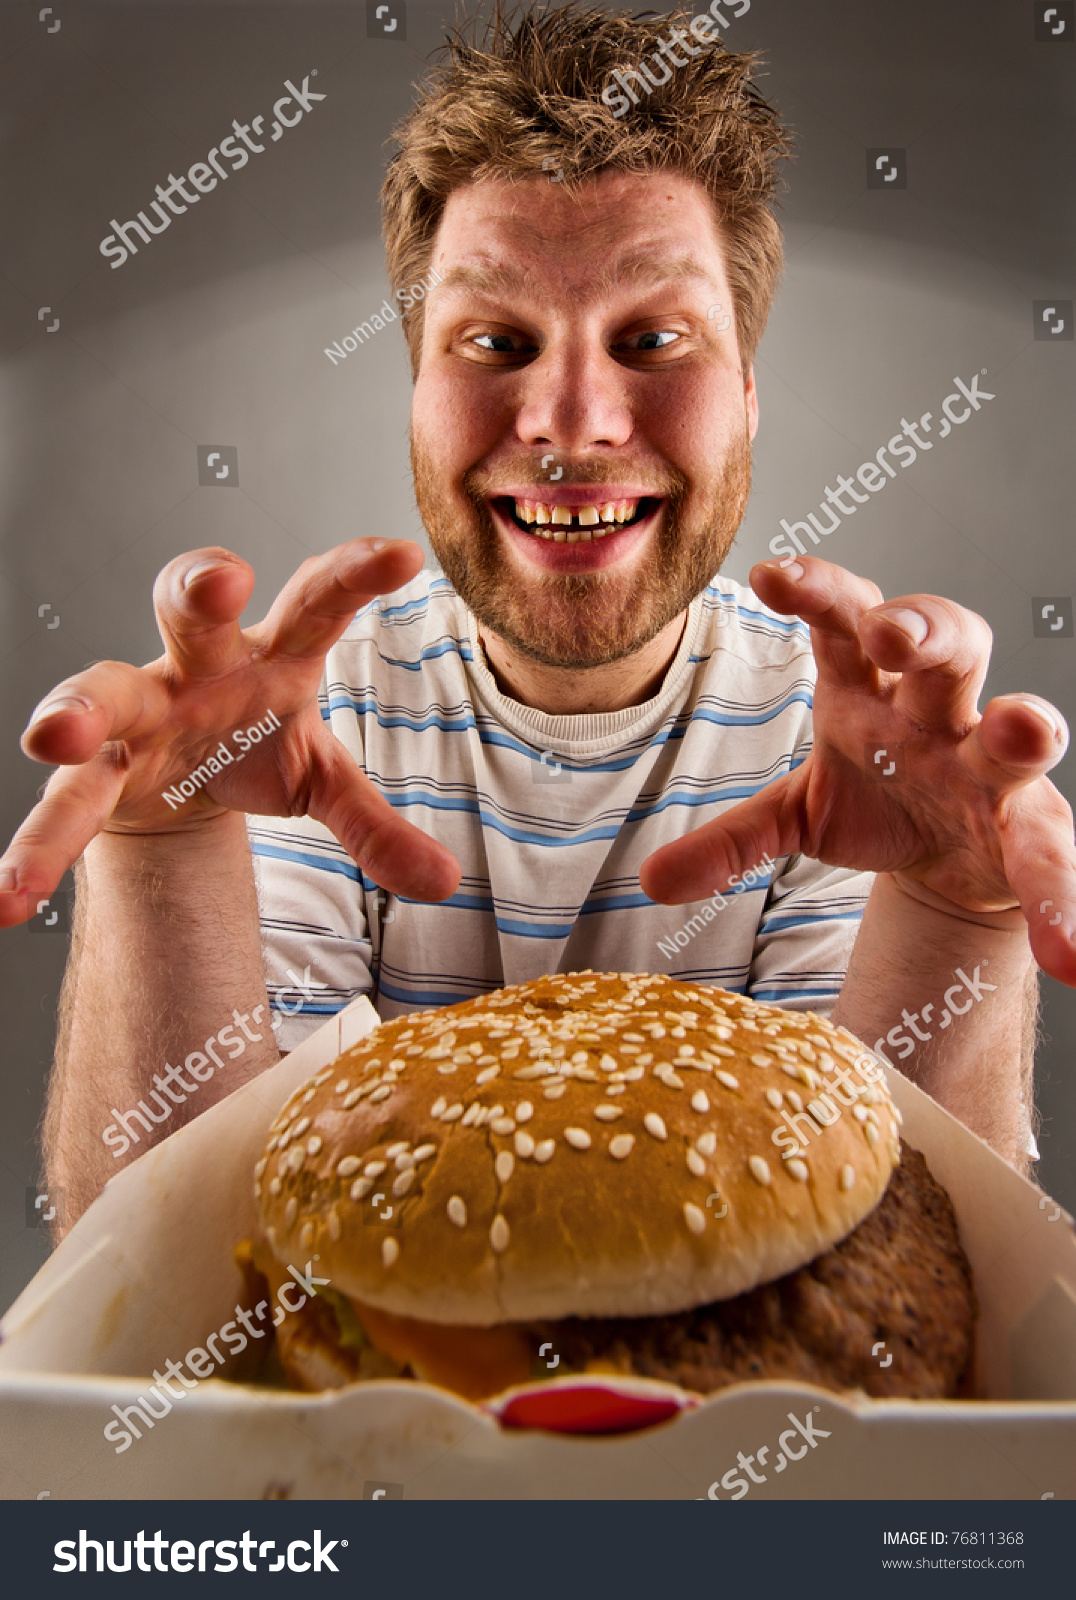 Happy Fat Eating Guy Burger